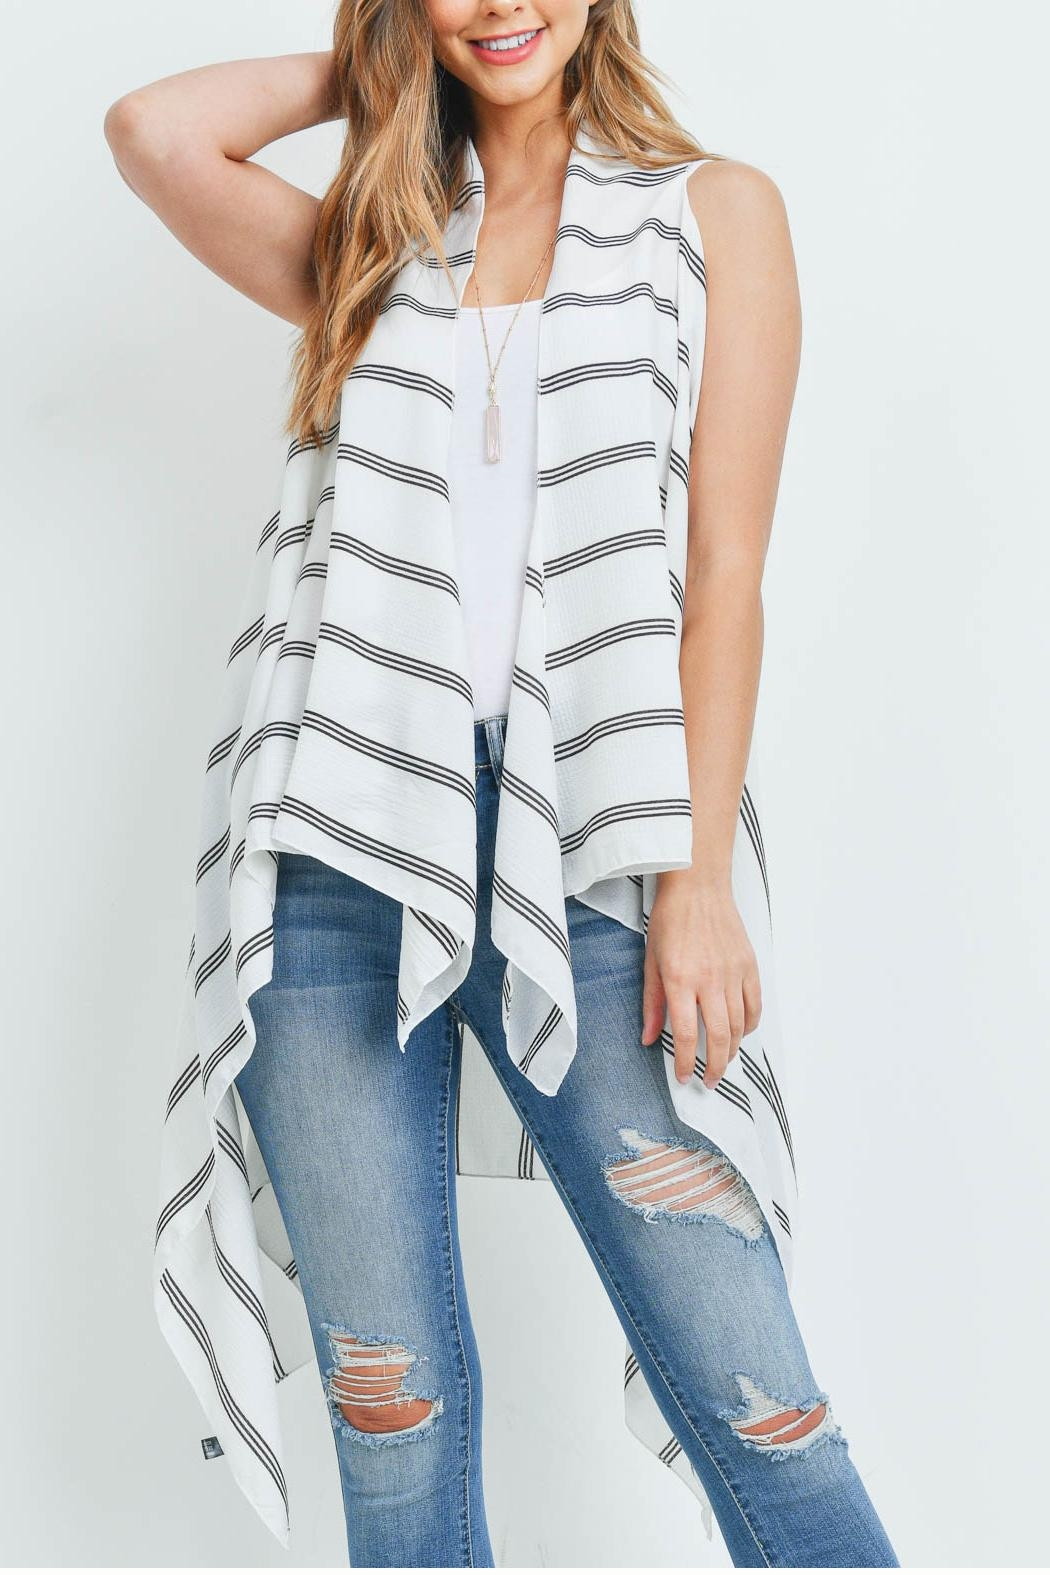 Riah Fashion Striped-Print-Kimono-Vest - Main Image